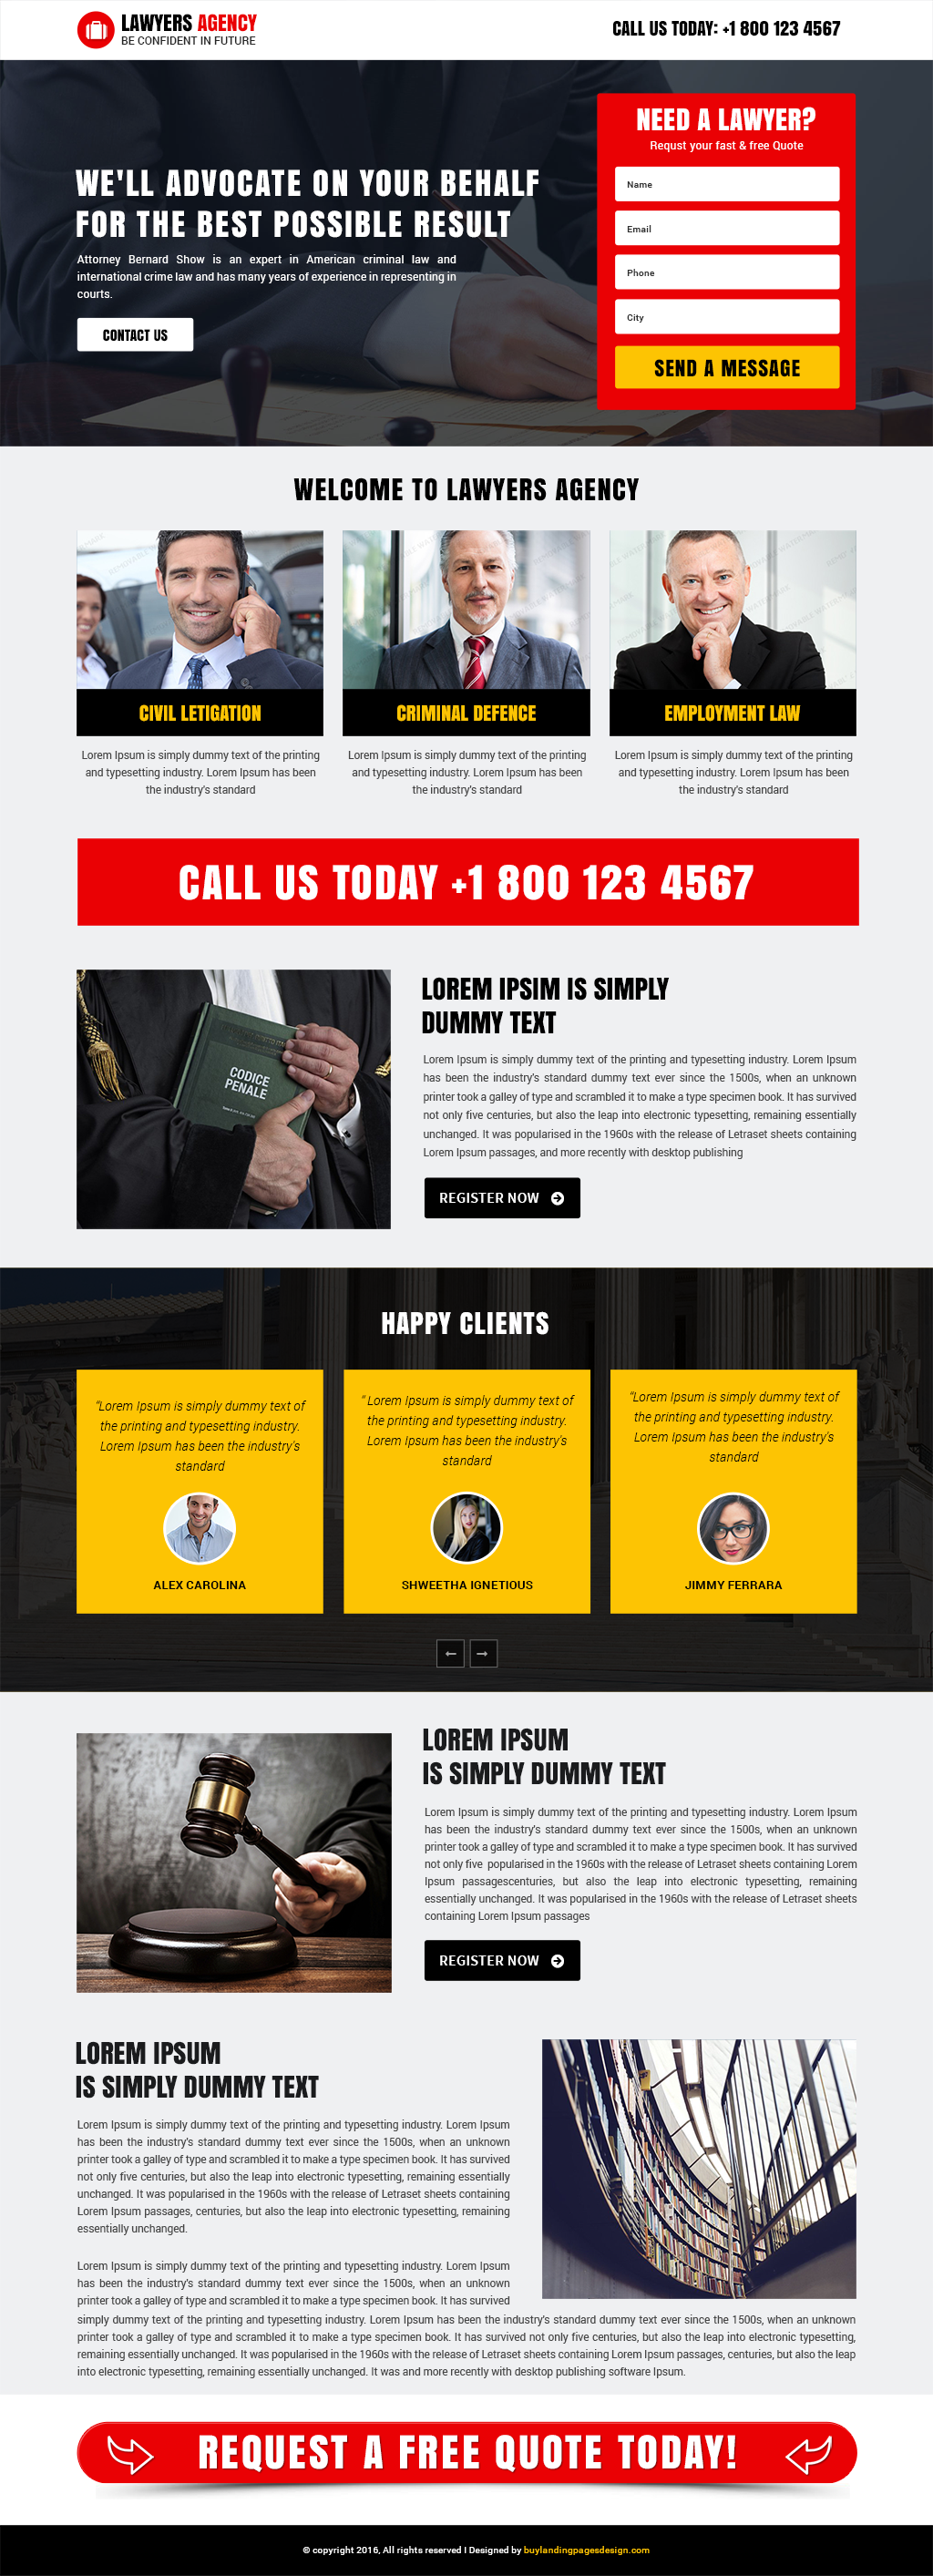 Best responsive lawyers agency landing page design template